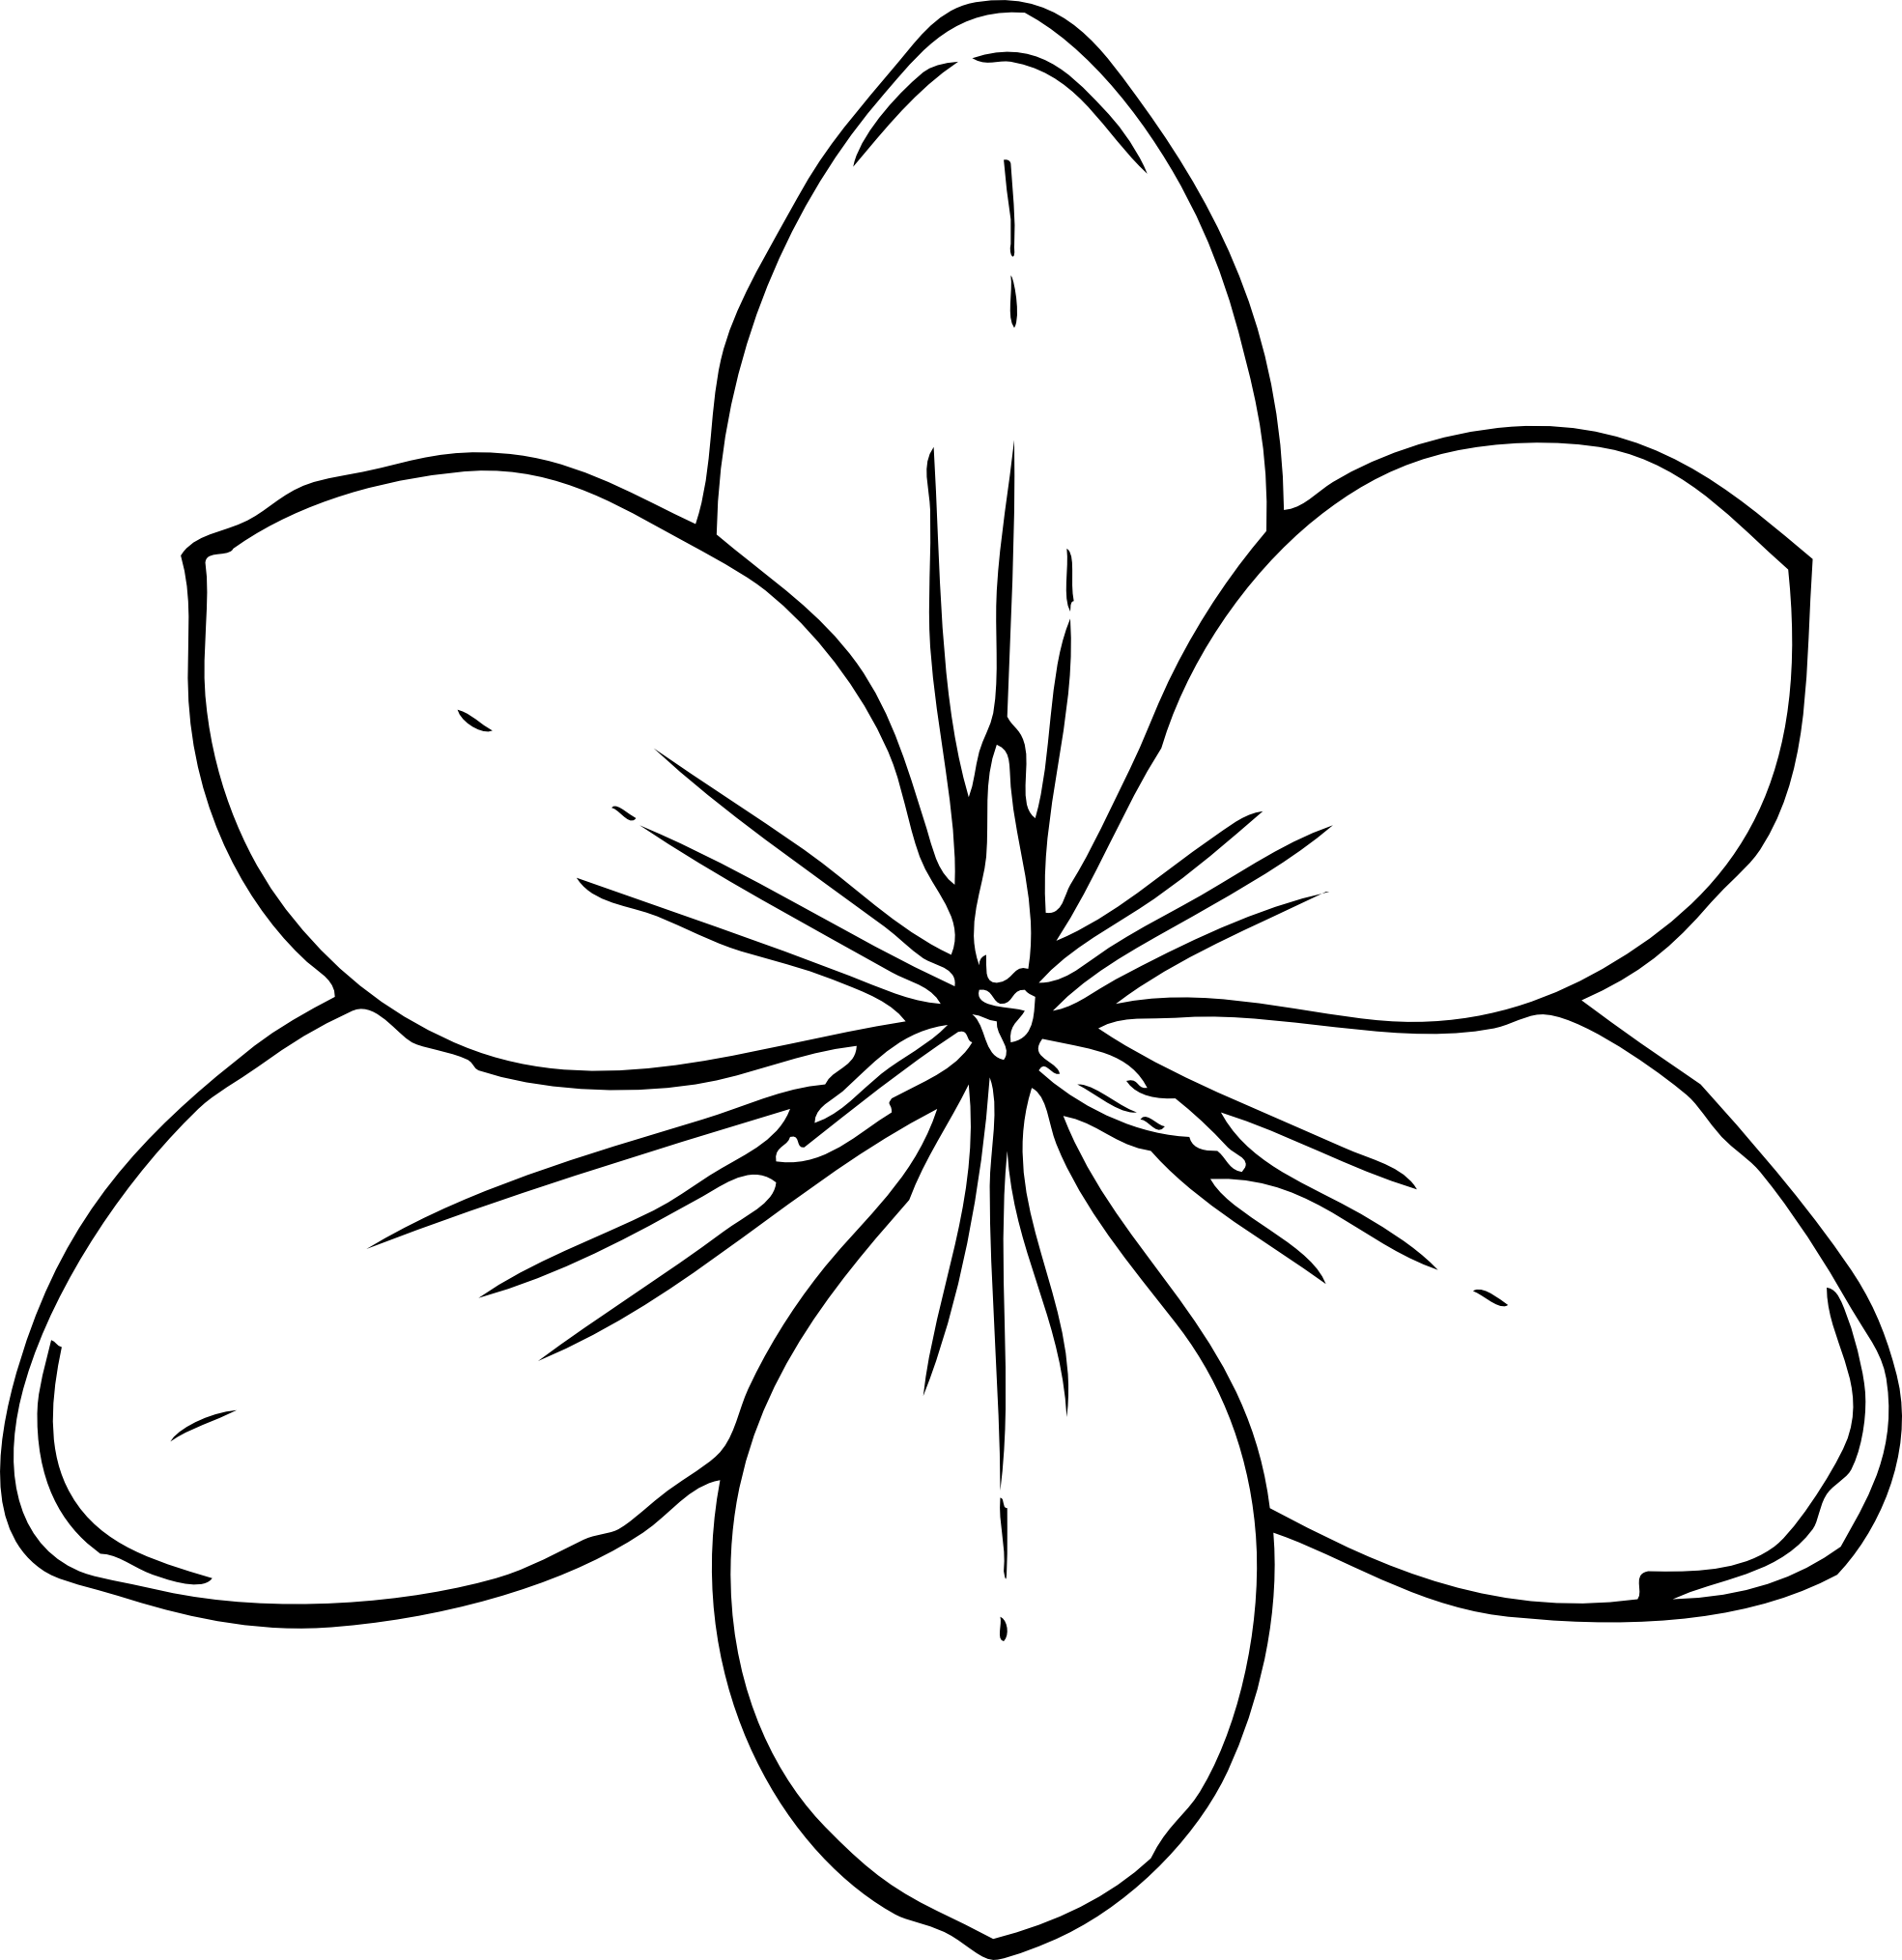 1969x2029 Lotus Flower Line Drawing Pictures And Cliparts, Download Free